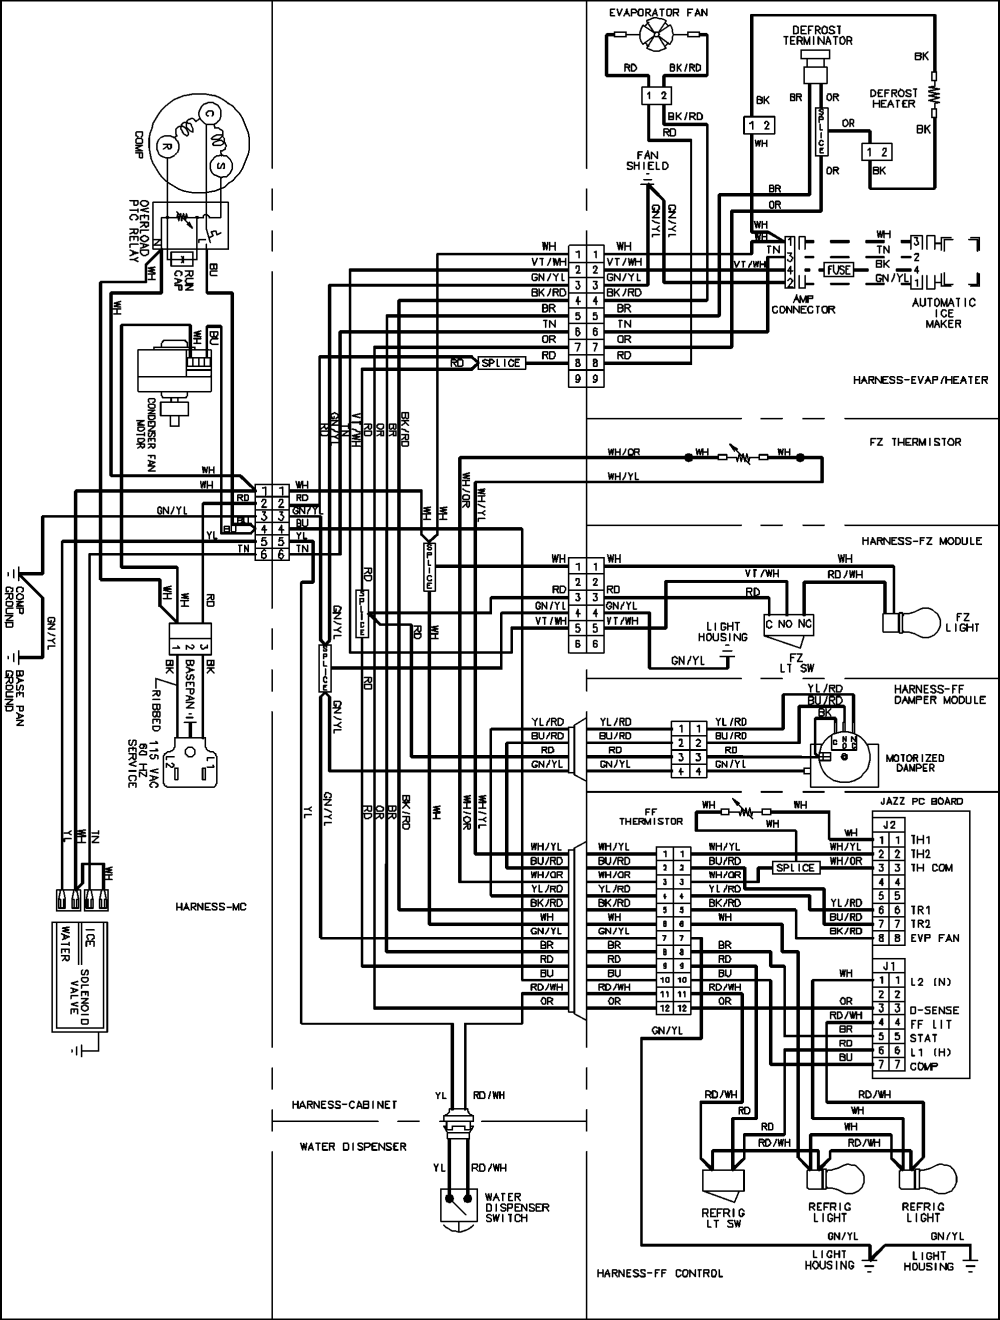 medium resolution of ge zoneline wiring diagram wiring diagram blogs ge zoneline wiring diagram ge ptac wiring diagram